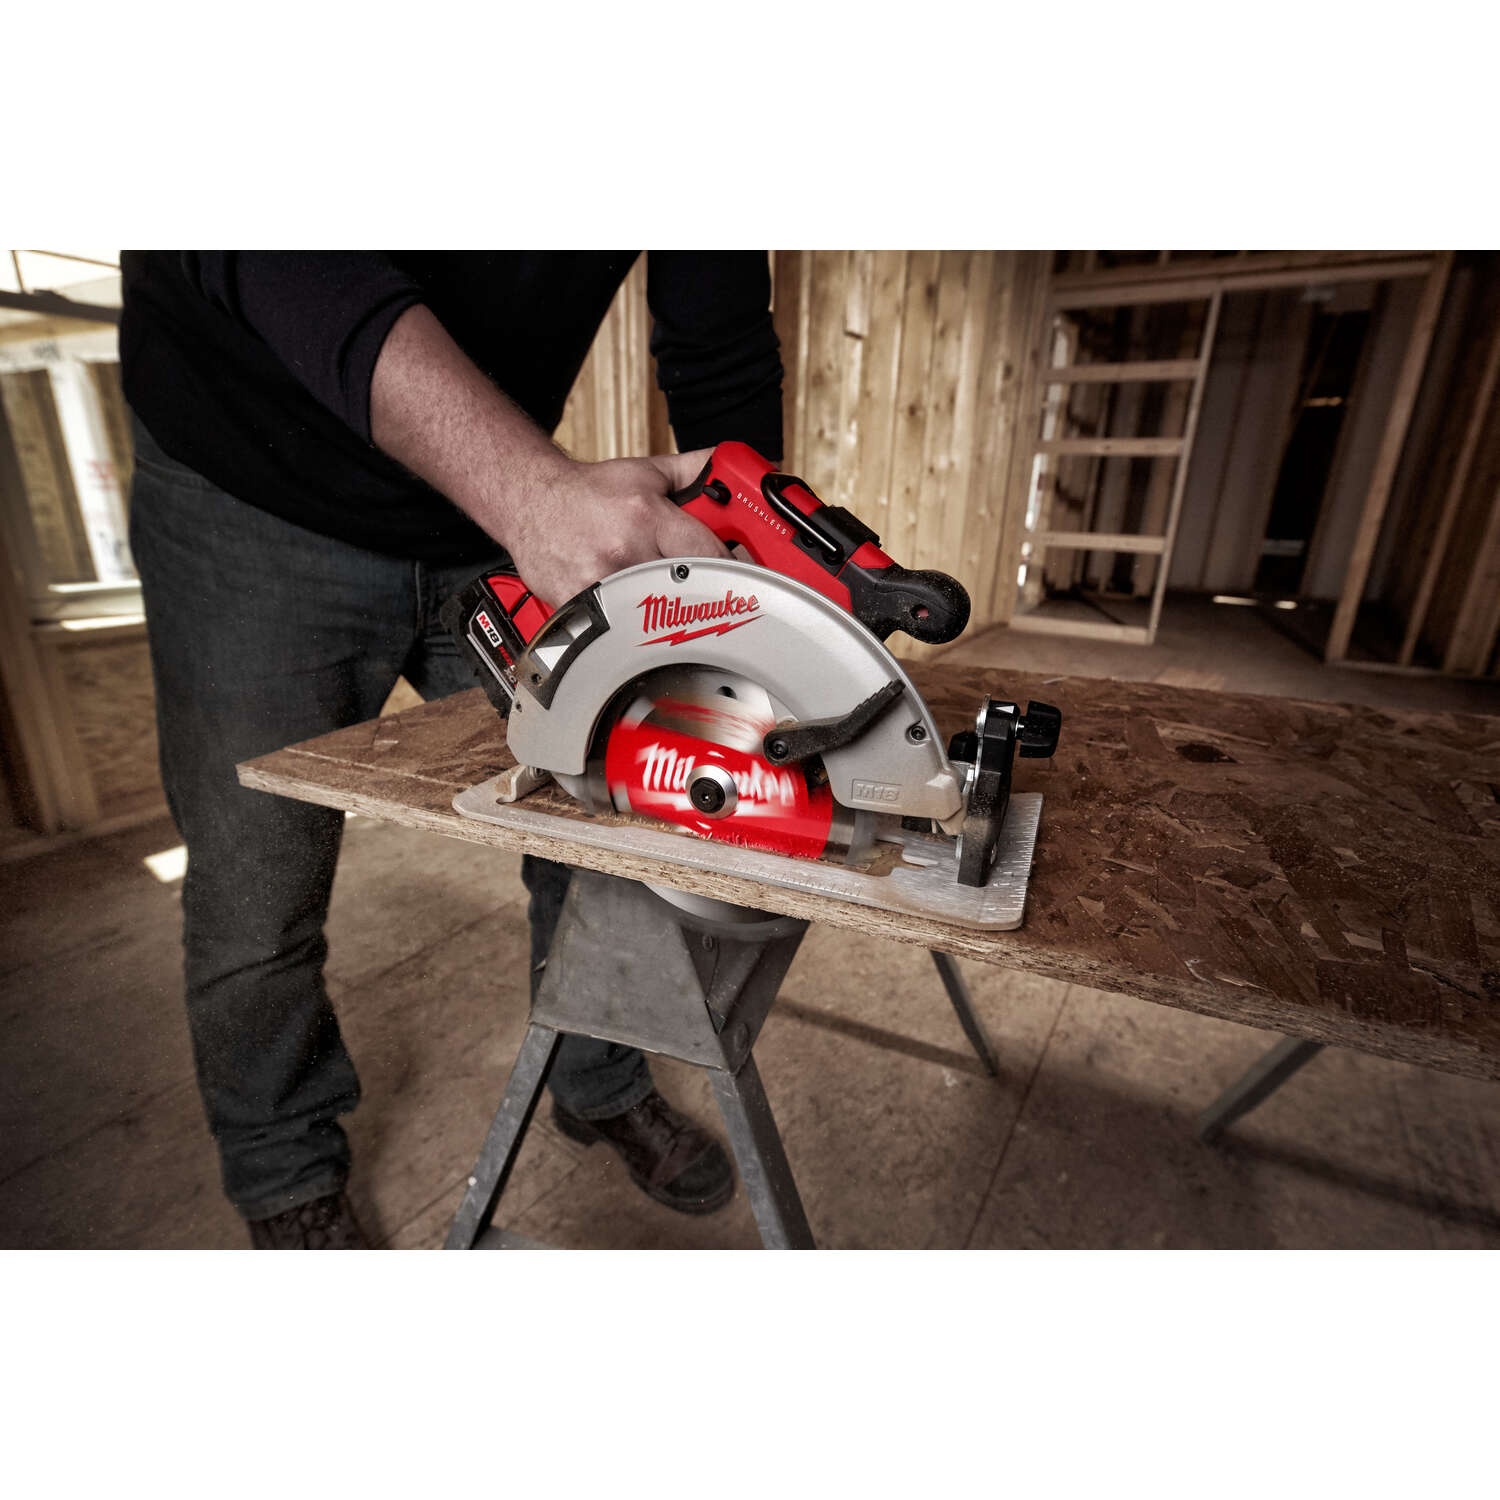 Milwaukee  M18  7-1/4 in. 18 volt Cordless  Brushless Circular Saw  Kit 5000 rpm